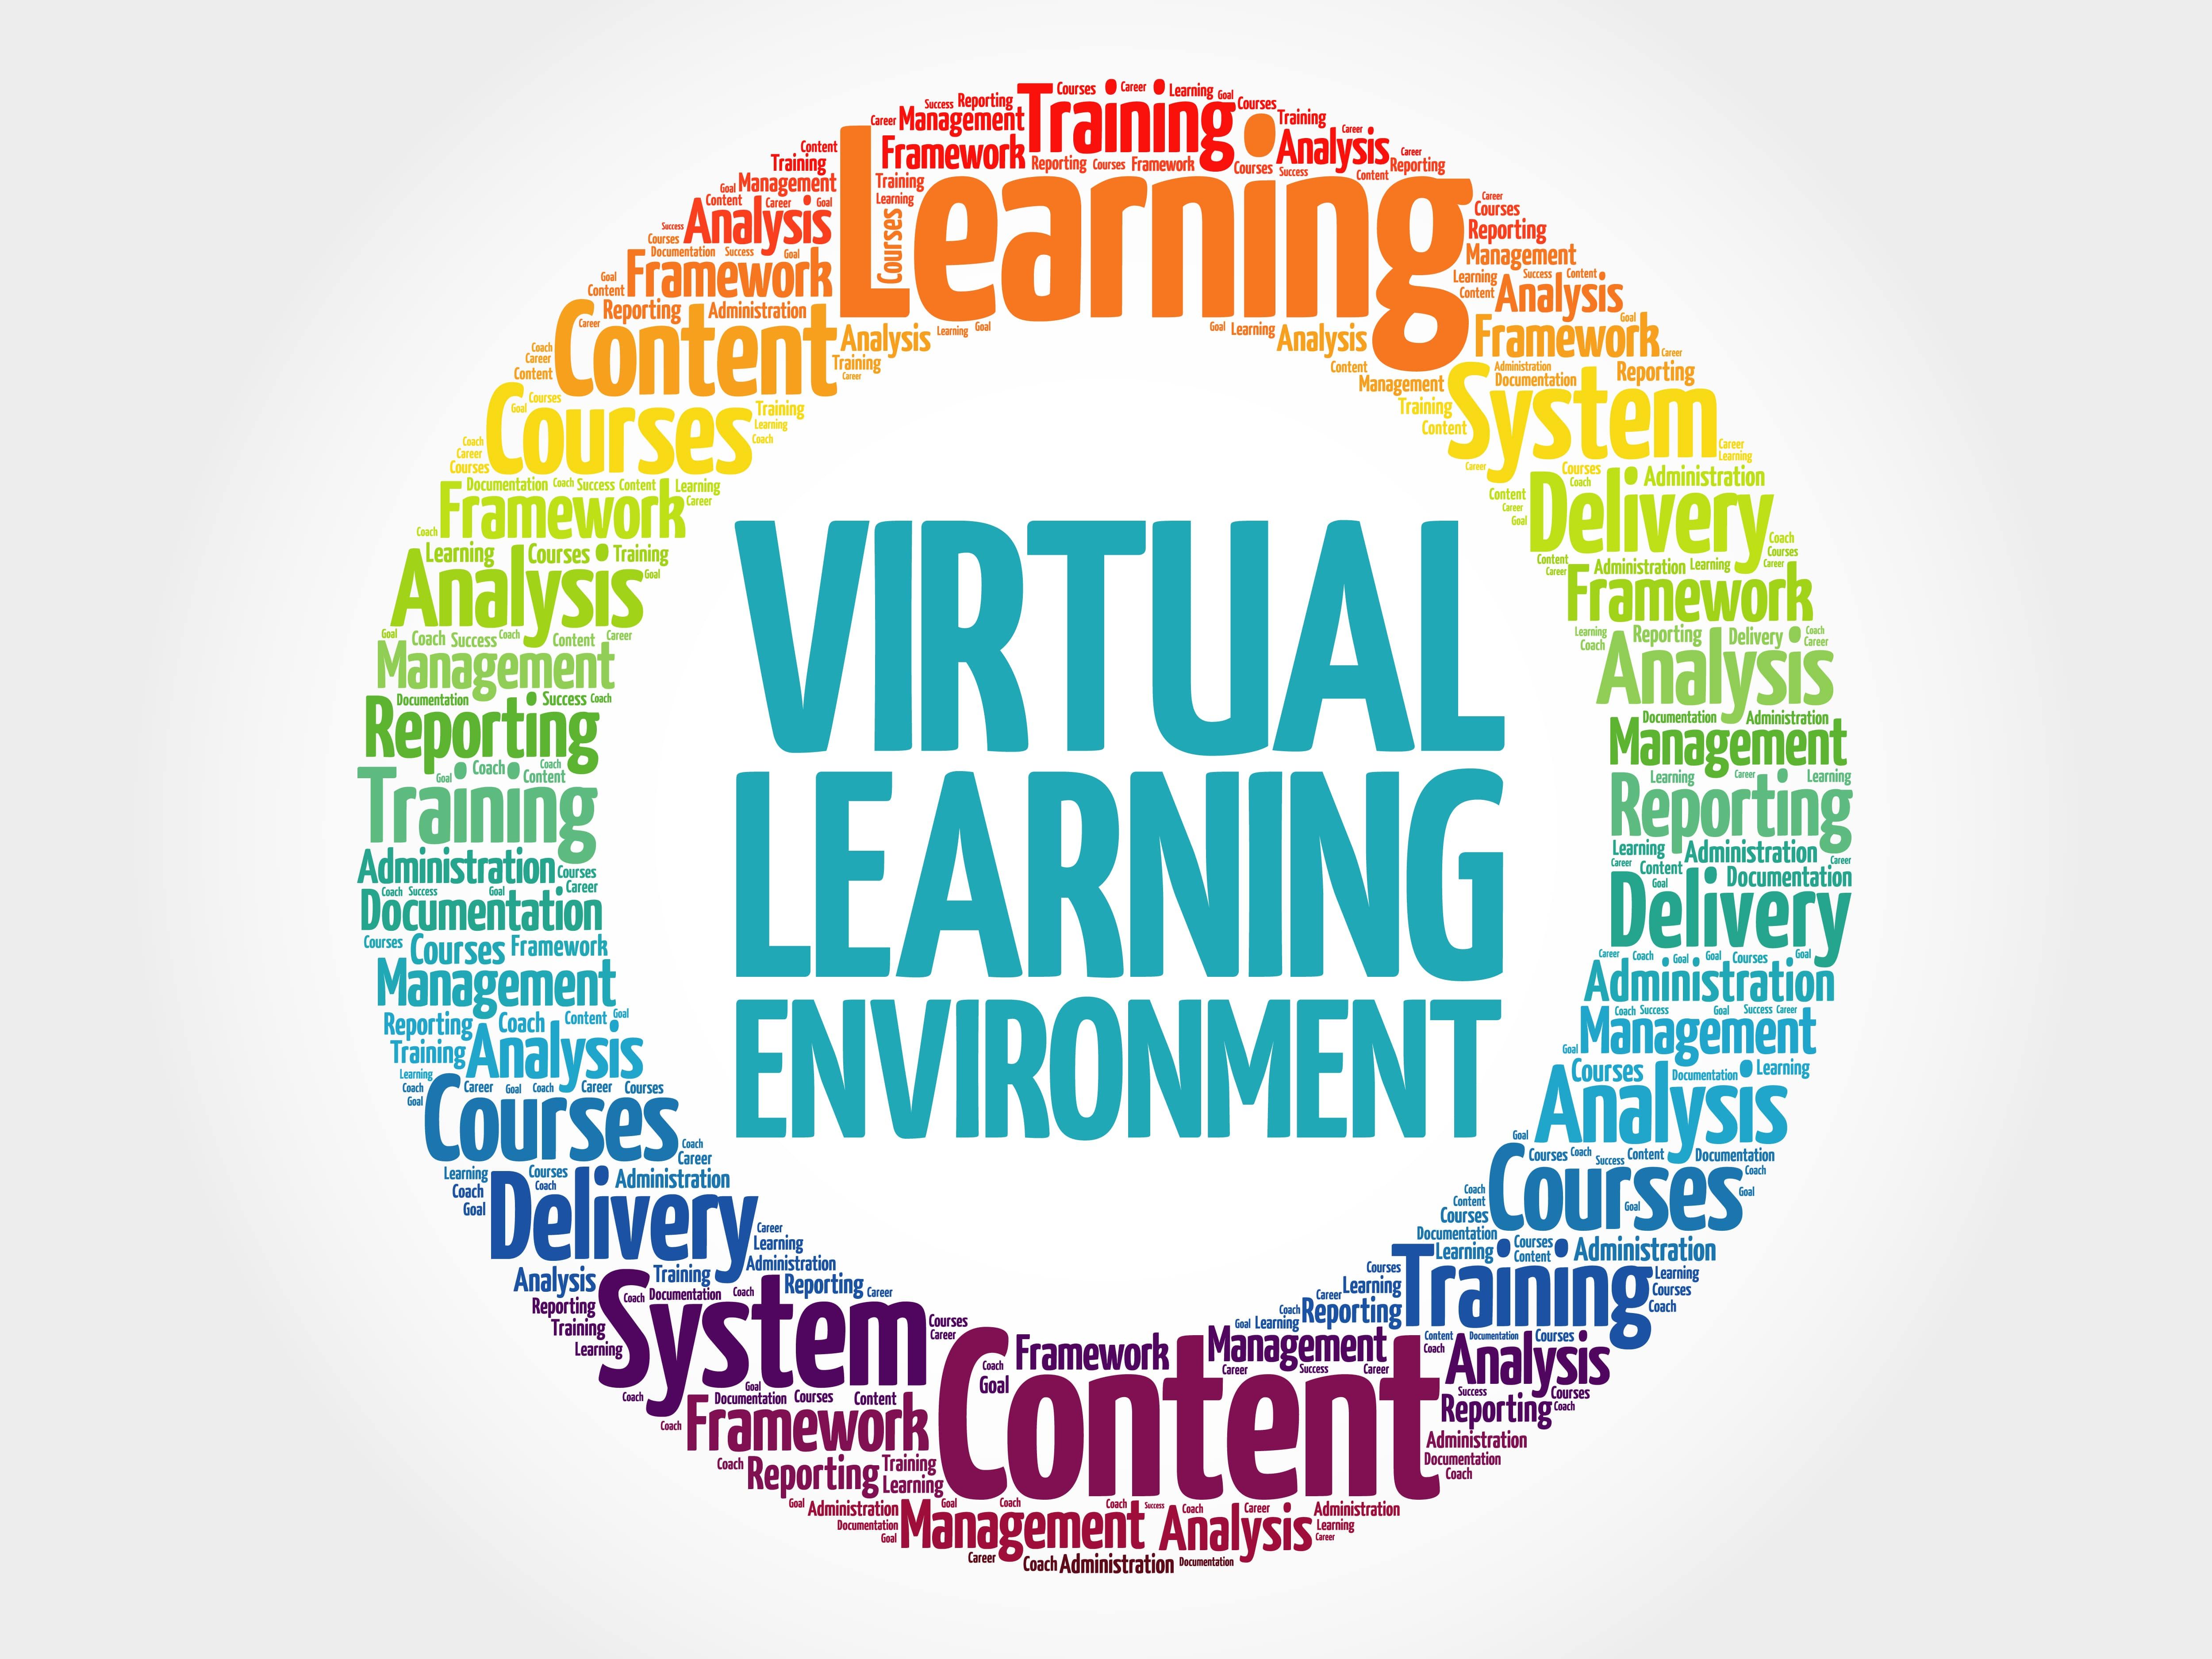 Virtual Classroom Training Course